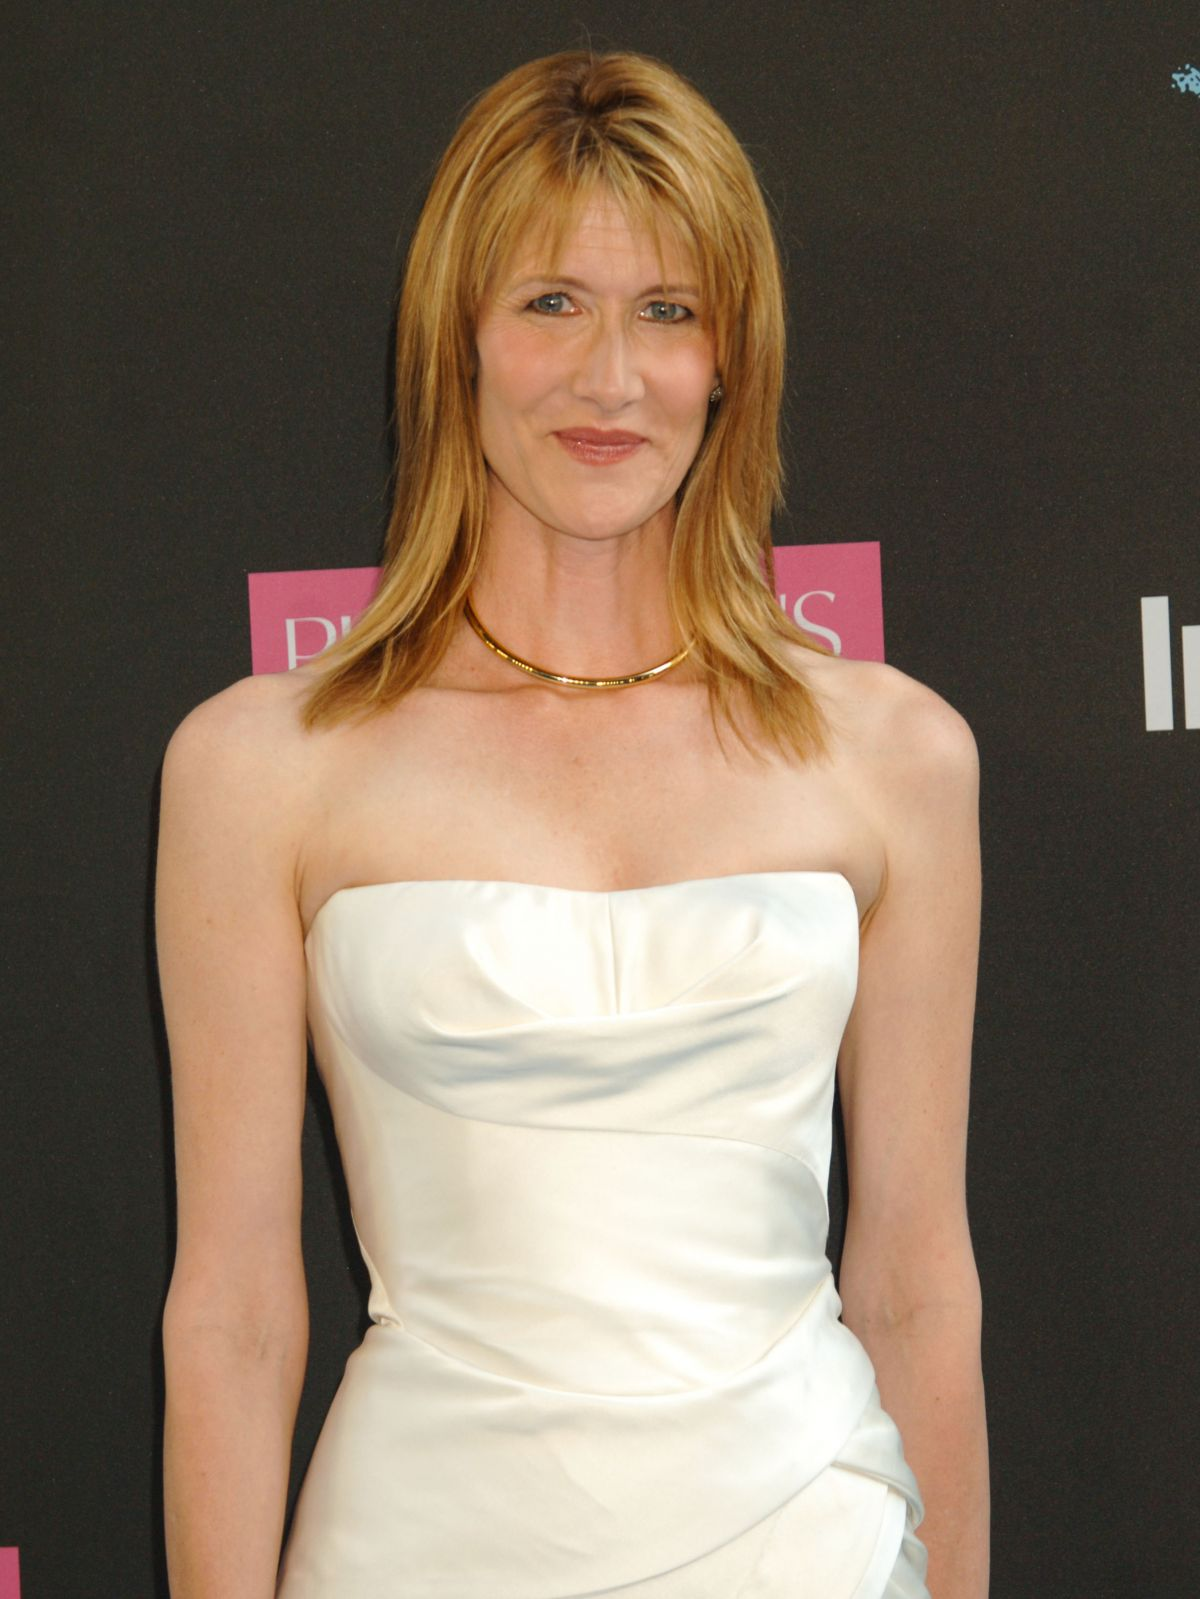 laura dern serieslaura dern young, laura dern twin peaks, laura dern instagram, laura dern husband, laura dern height, laura dern imdb, laura dern foto, laura dern 1993, laura dern ancestry, laura dern brad pitt, laura dern fansite, laura dern just jared, laura dern interview, laura dern series, laura dern hawtcelebs, laura dern oscar, laura dern actress, laura dern jurassic park, laura dern and kyle maclachlan, laura dern zimbio